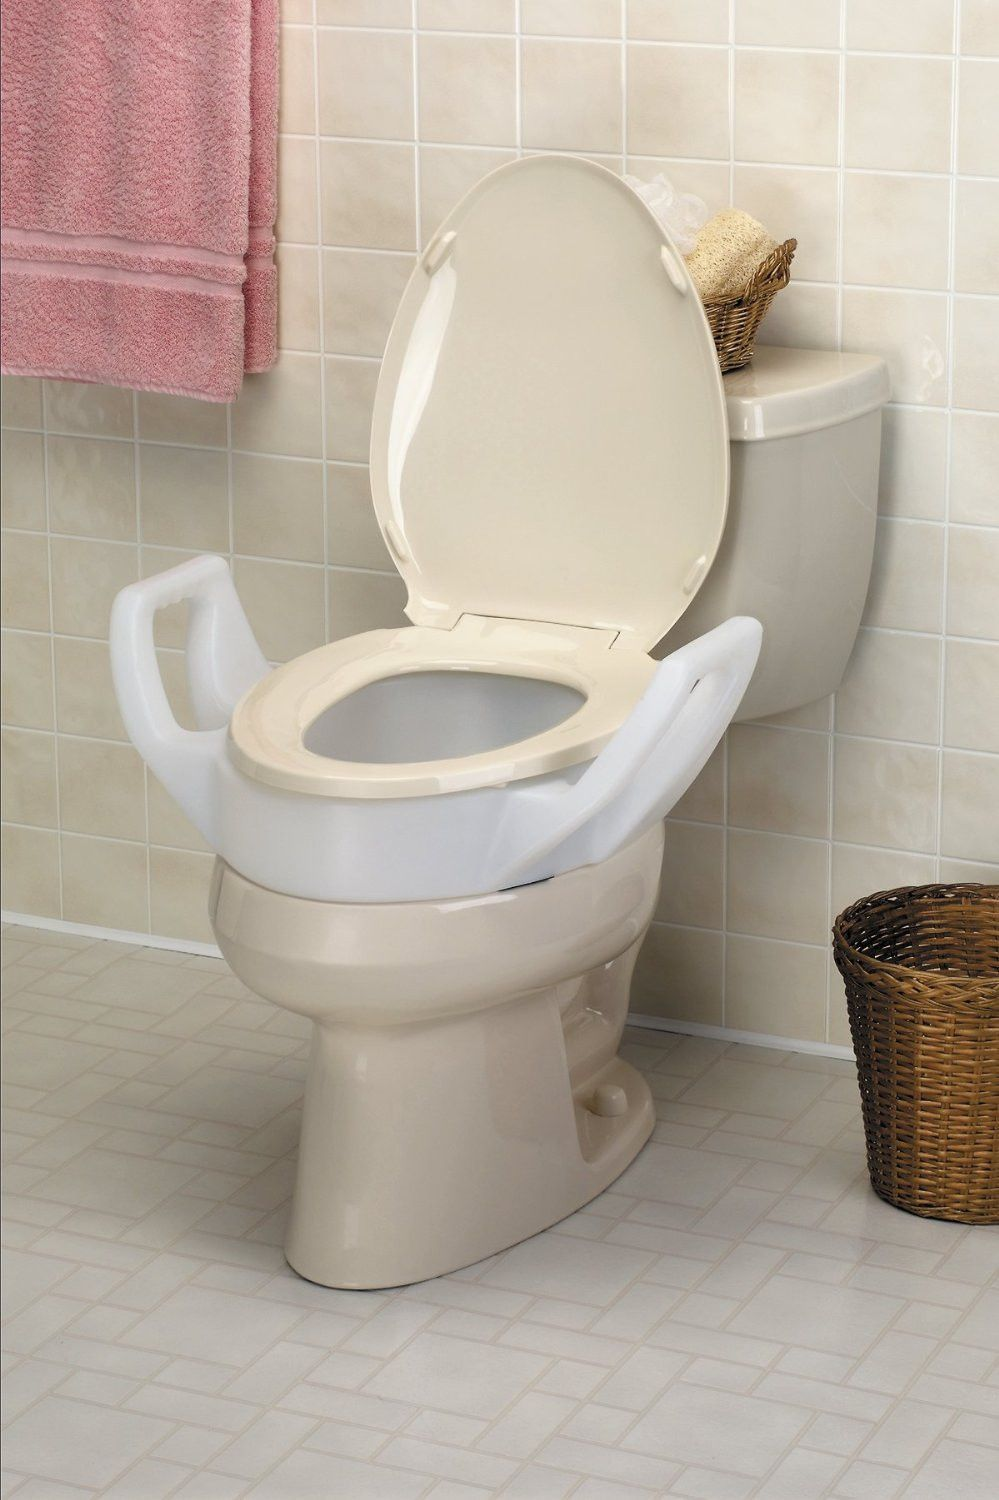 Raised Toilet Elongated Elevated Seat with Arms,fits In